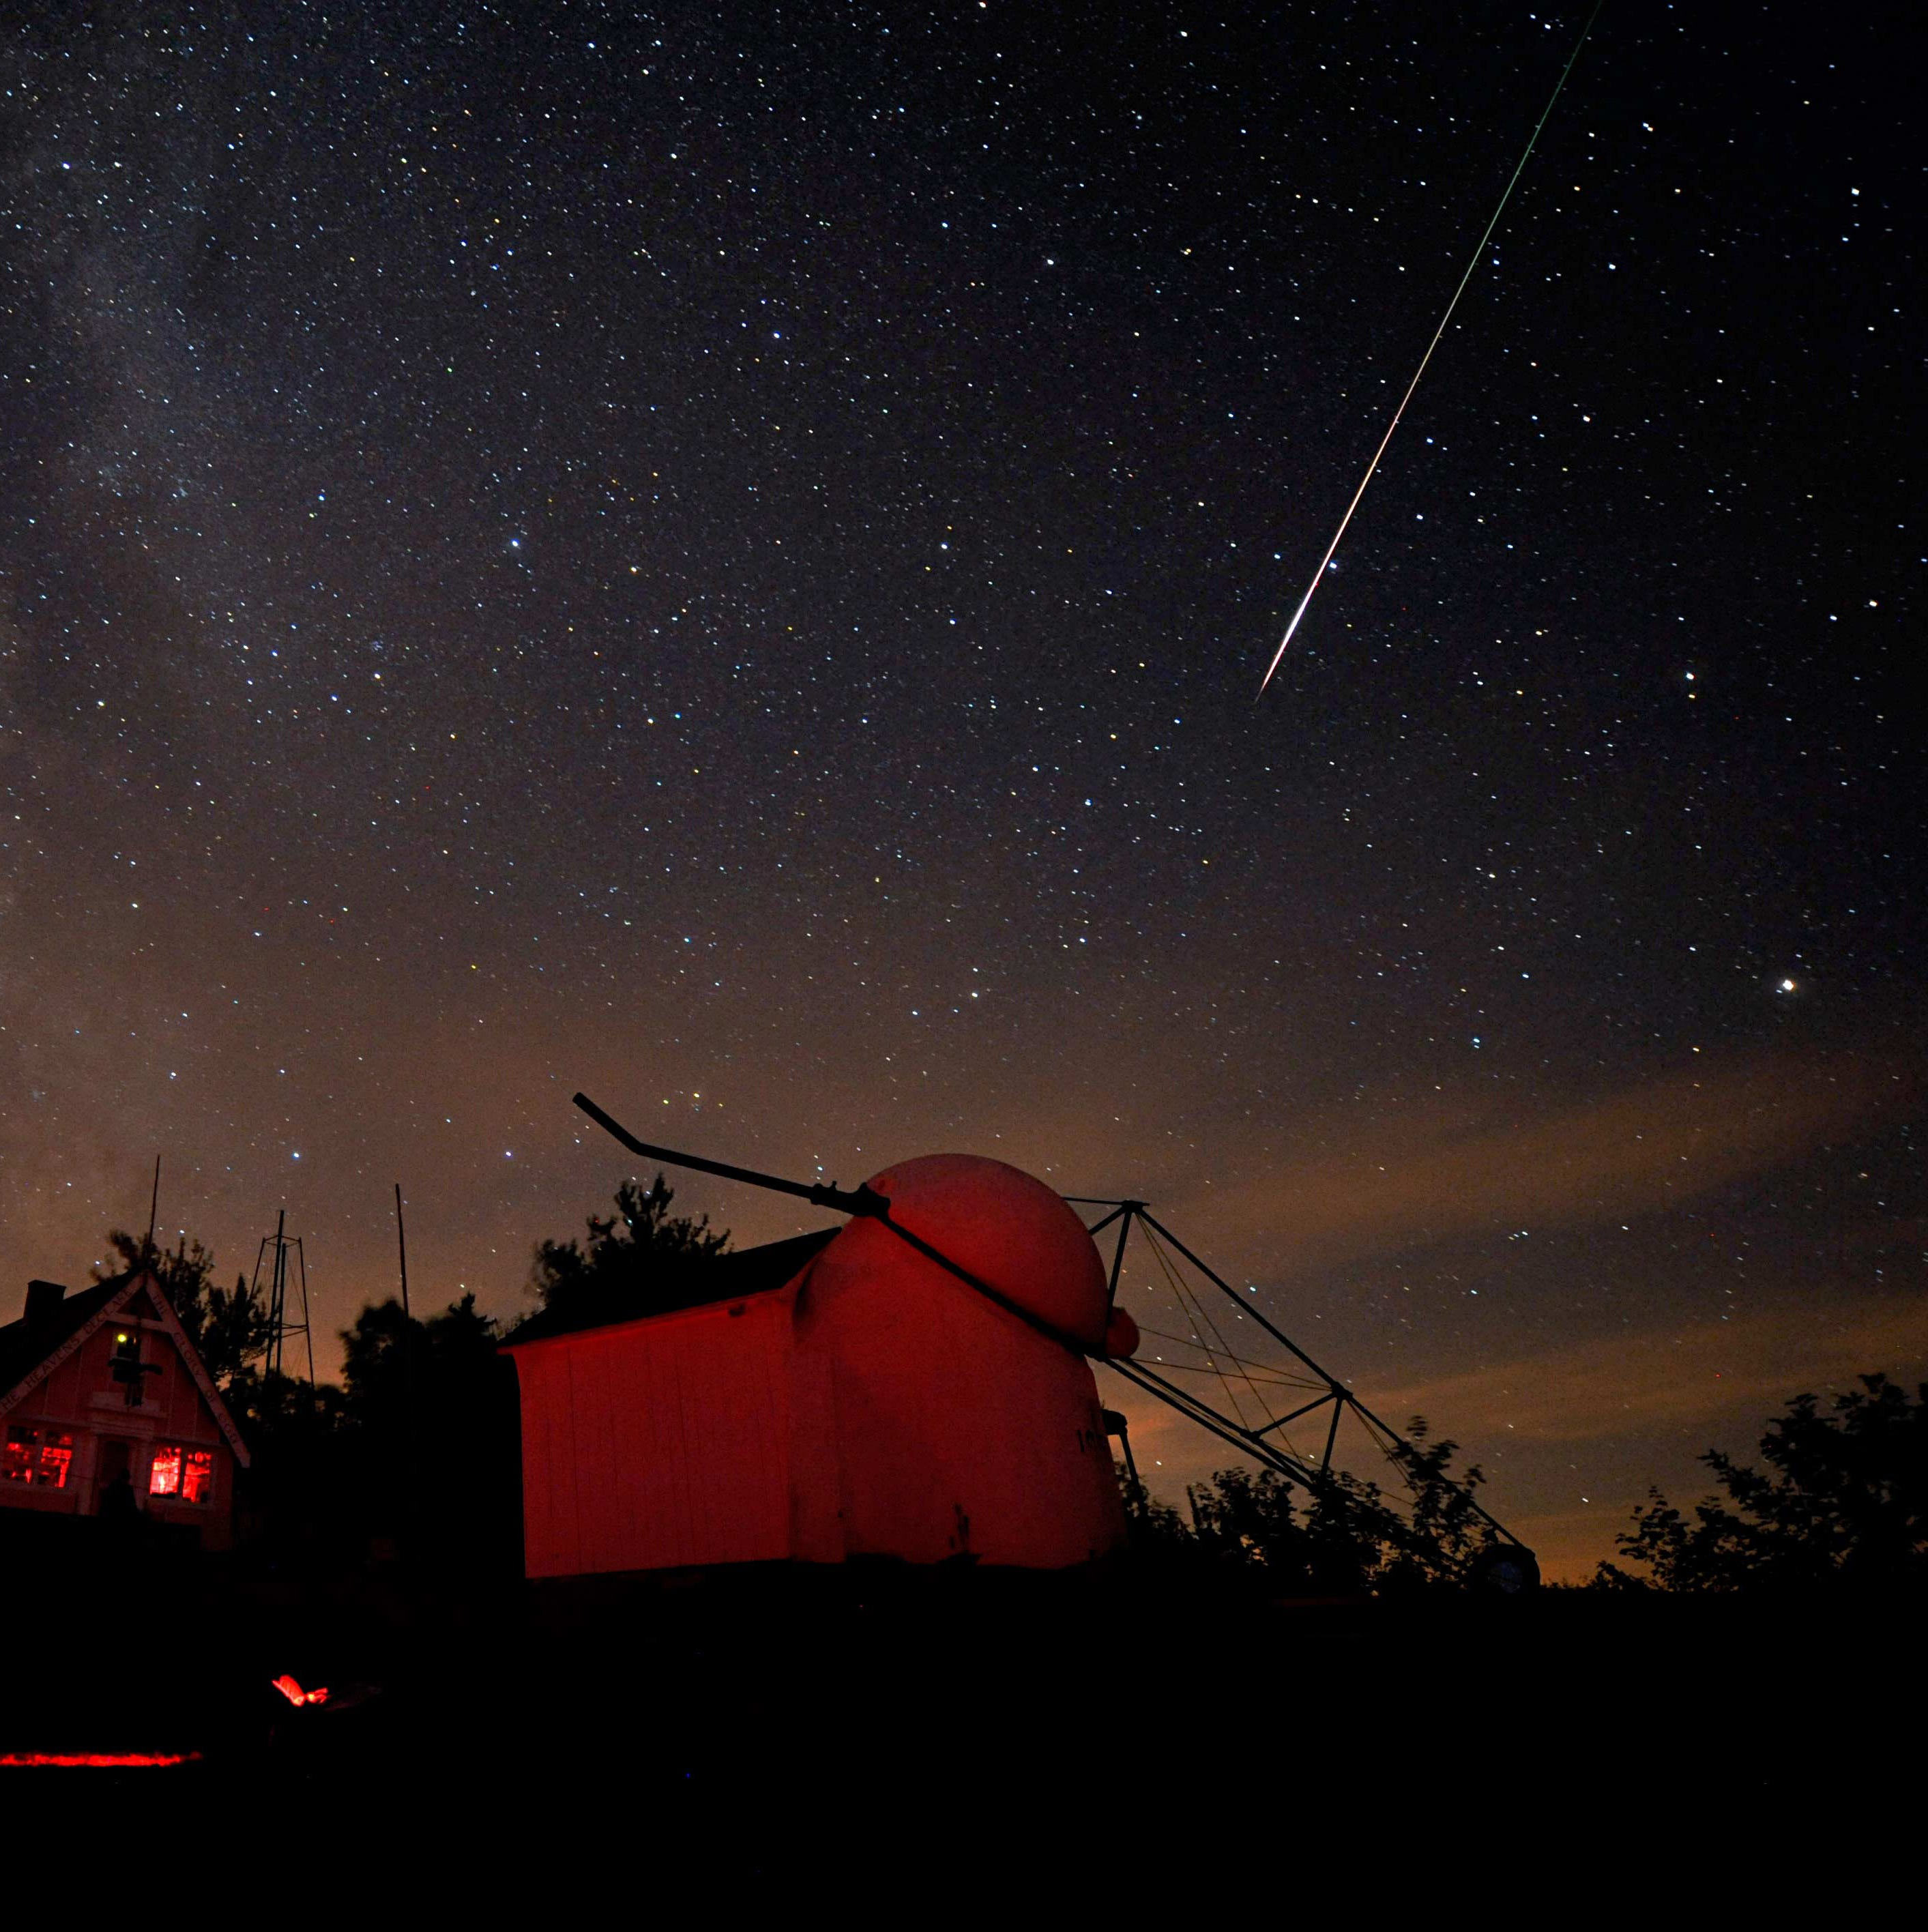 Perseid meteor shower to light up night sky this weekend